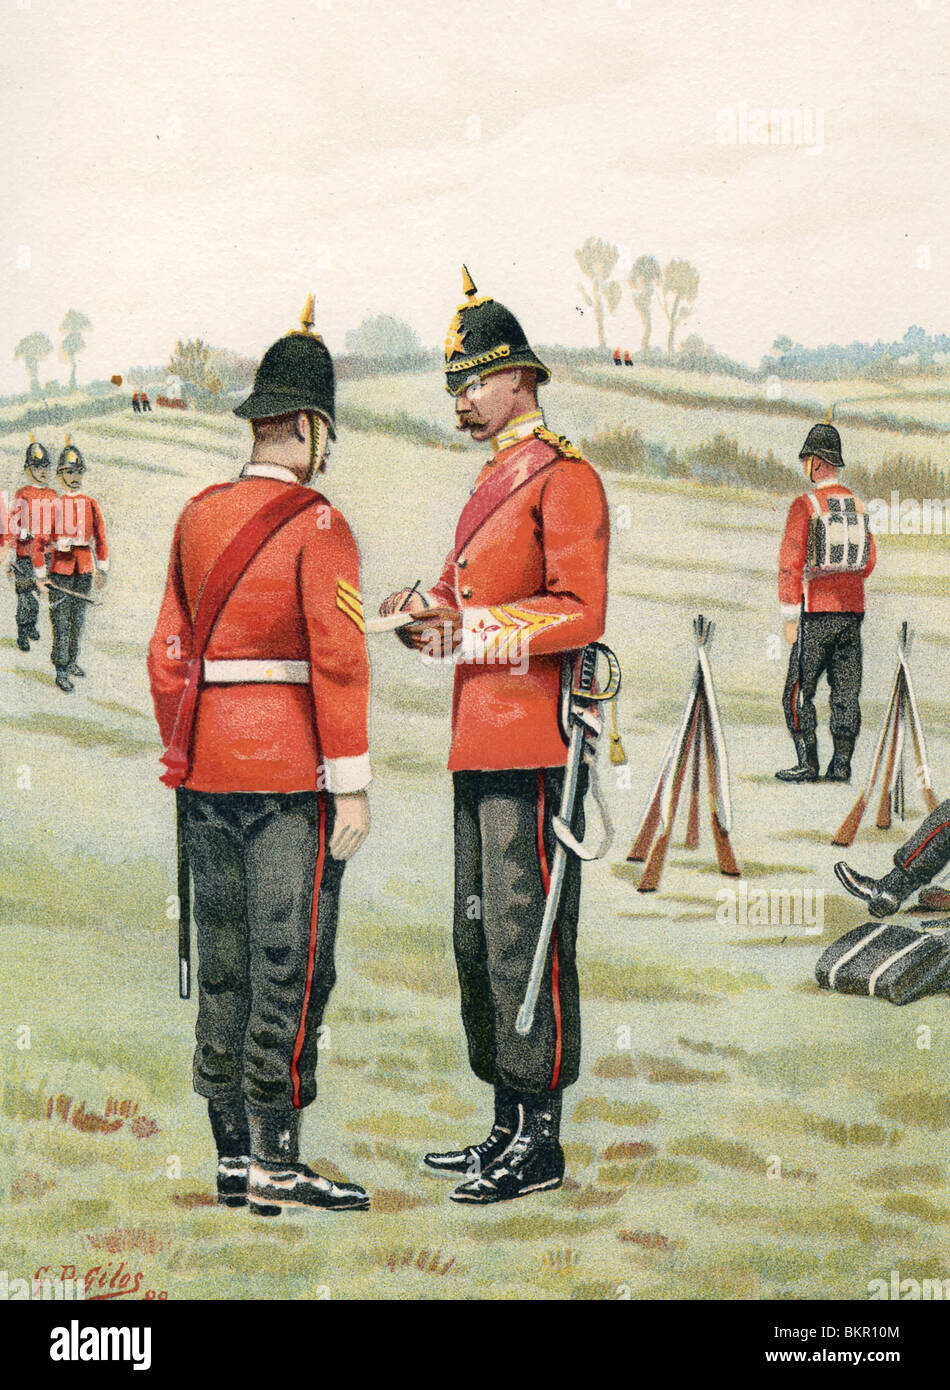 The 43rd - Oxfordshire Light Infantry - Stock Image